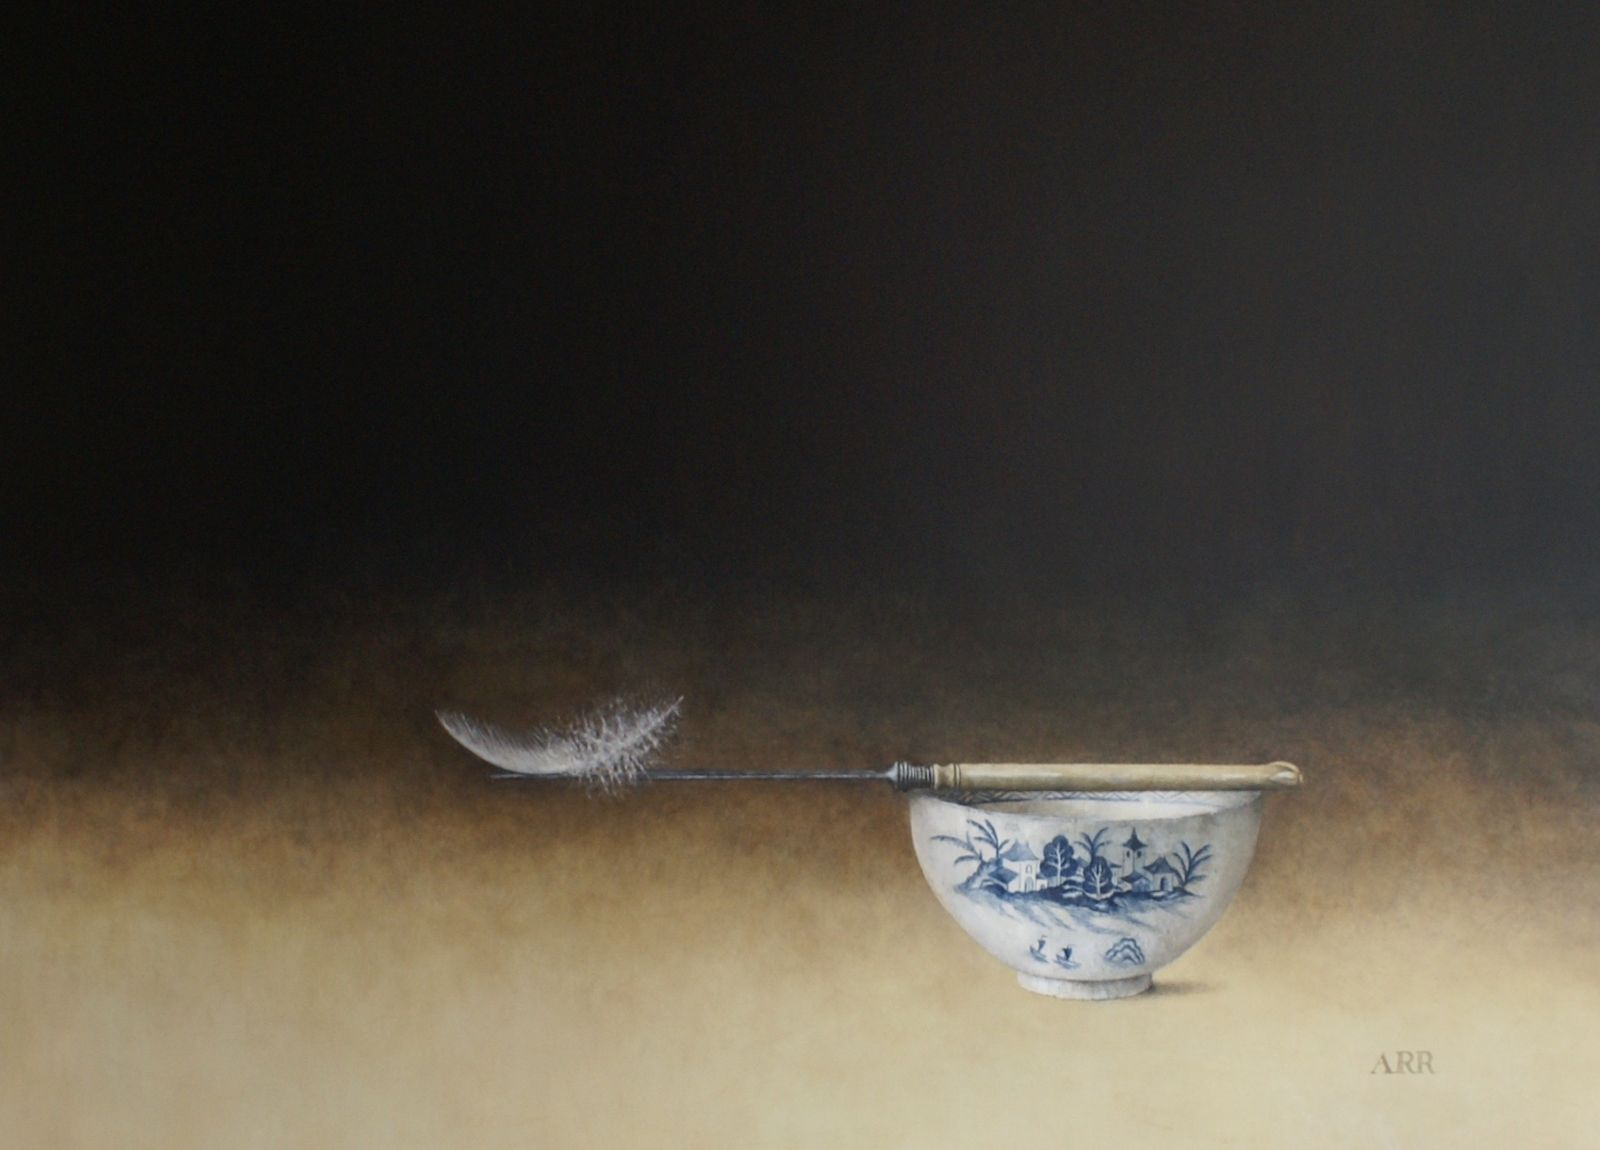 Chinese Bowl with Knife and Balancing Feather by Alison Rankin